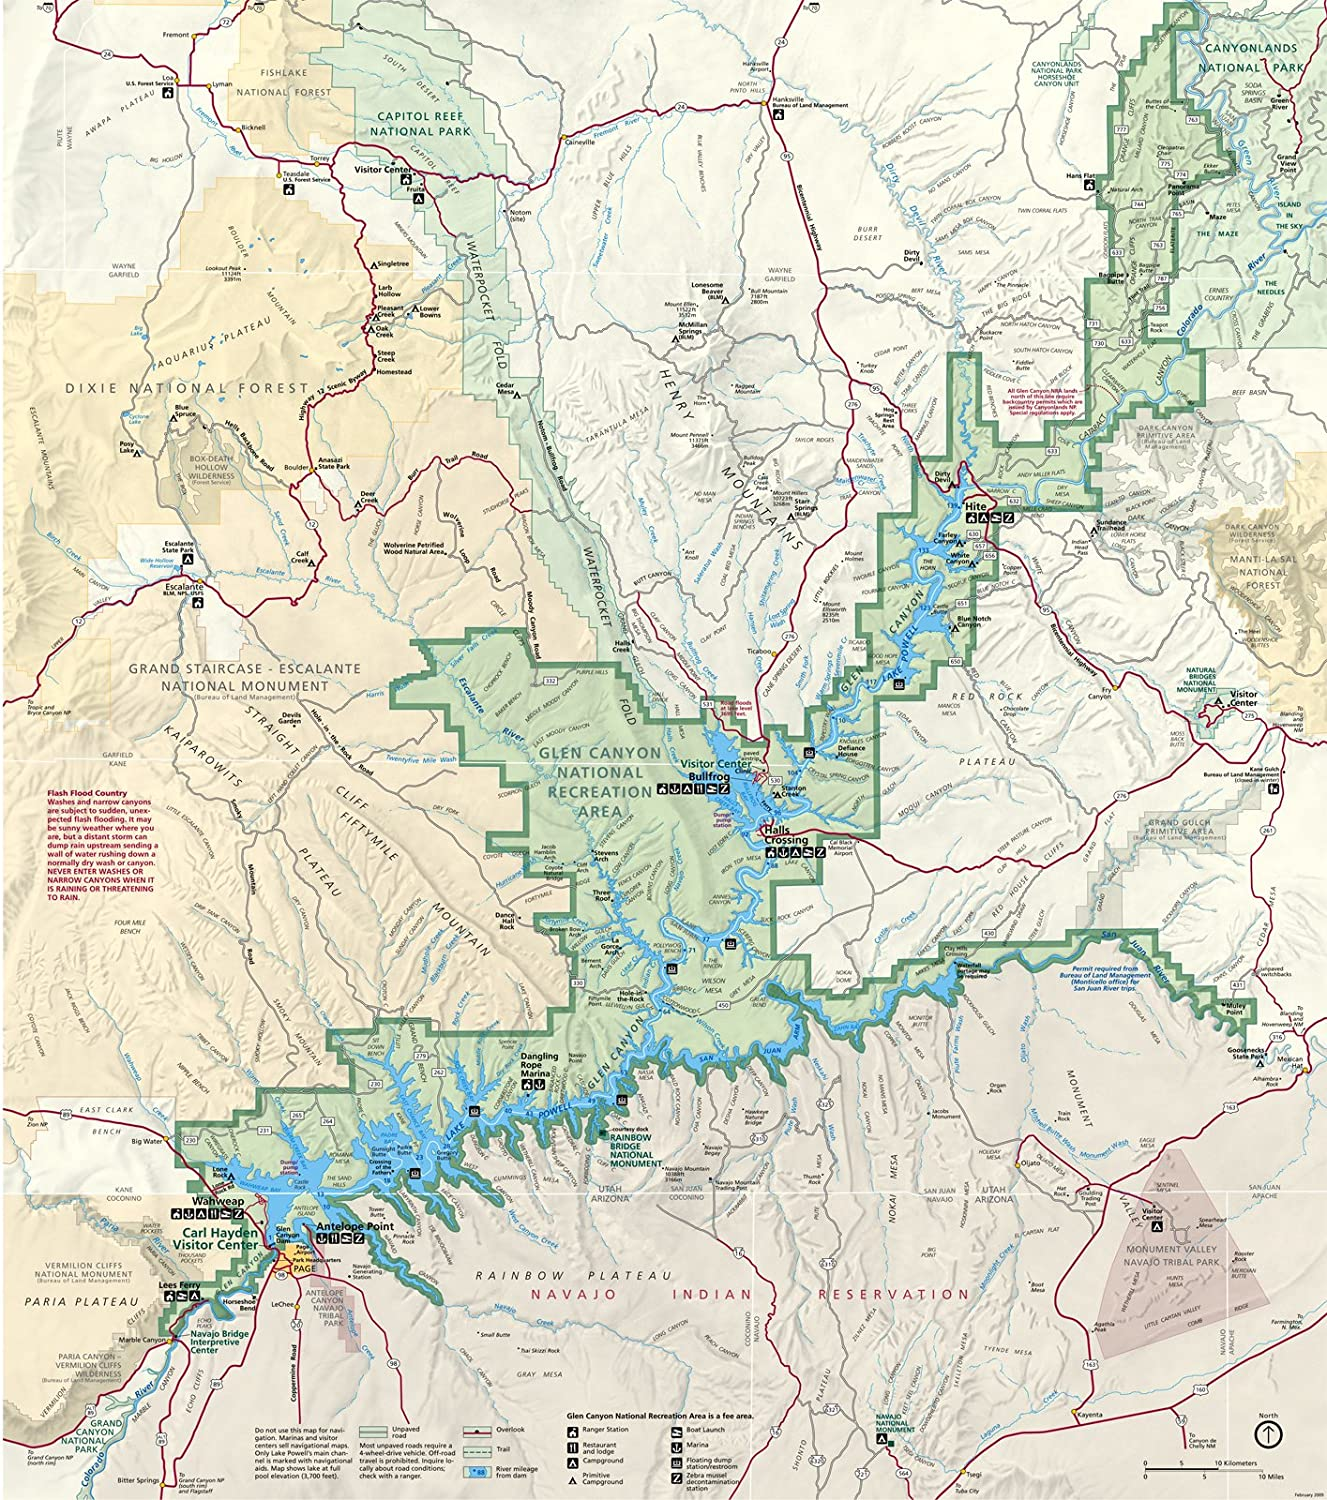 ARThouse Maps Wall Map of The Glen Canyon National Recreation Area in Arizona and Utah, 23 X 26 Inch Image